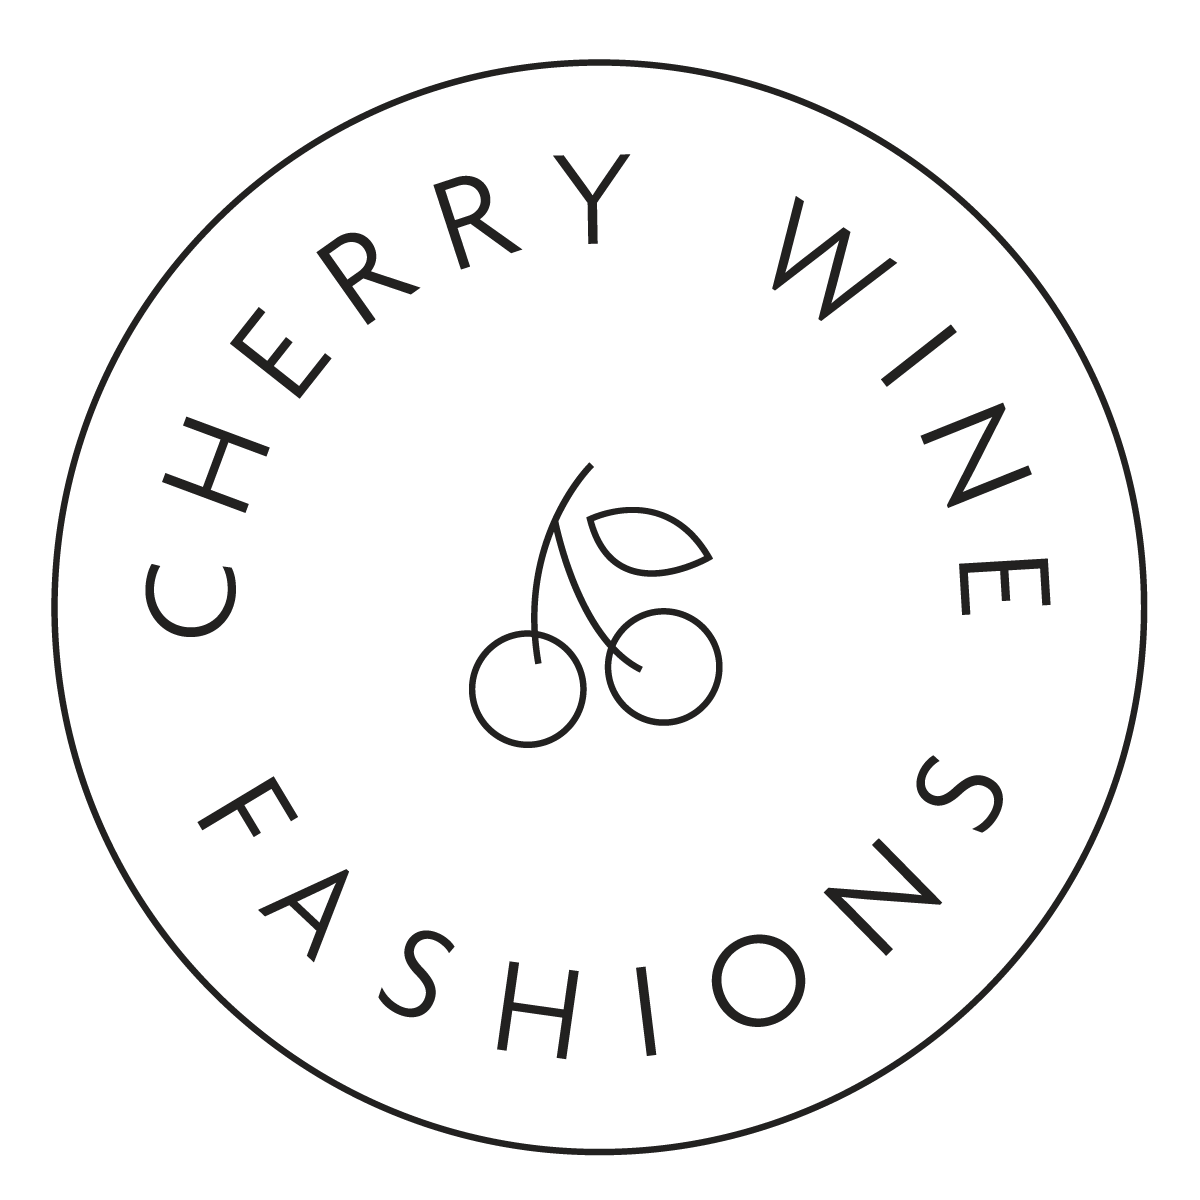 CherryWineFashions_SecondaryLogo_Black-01.png